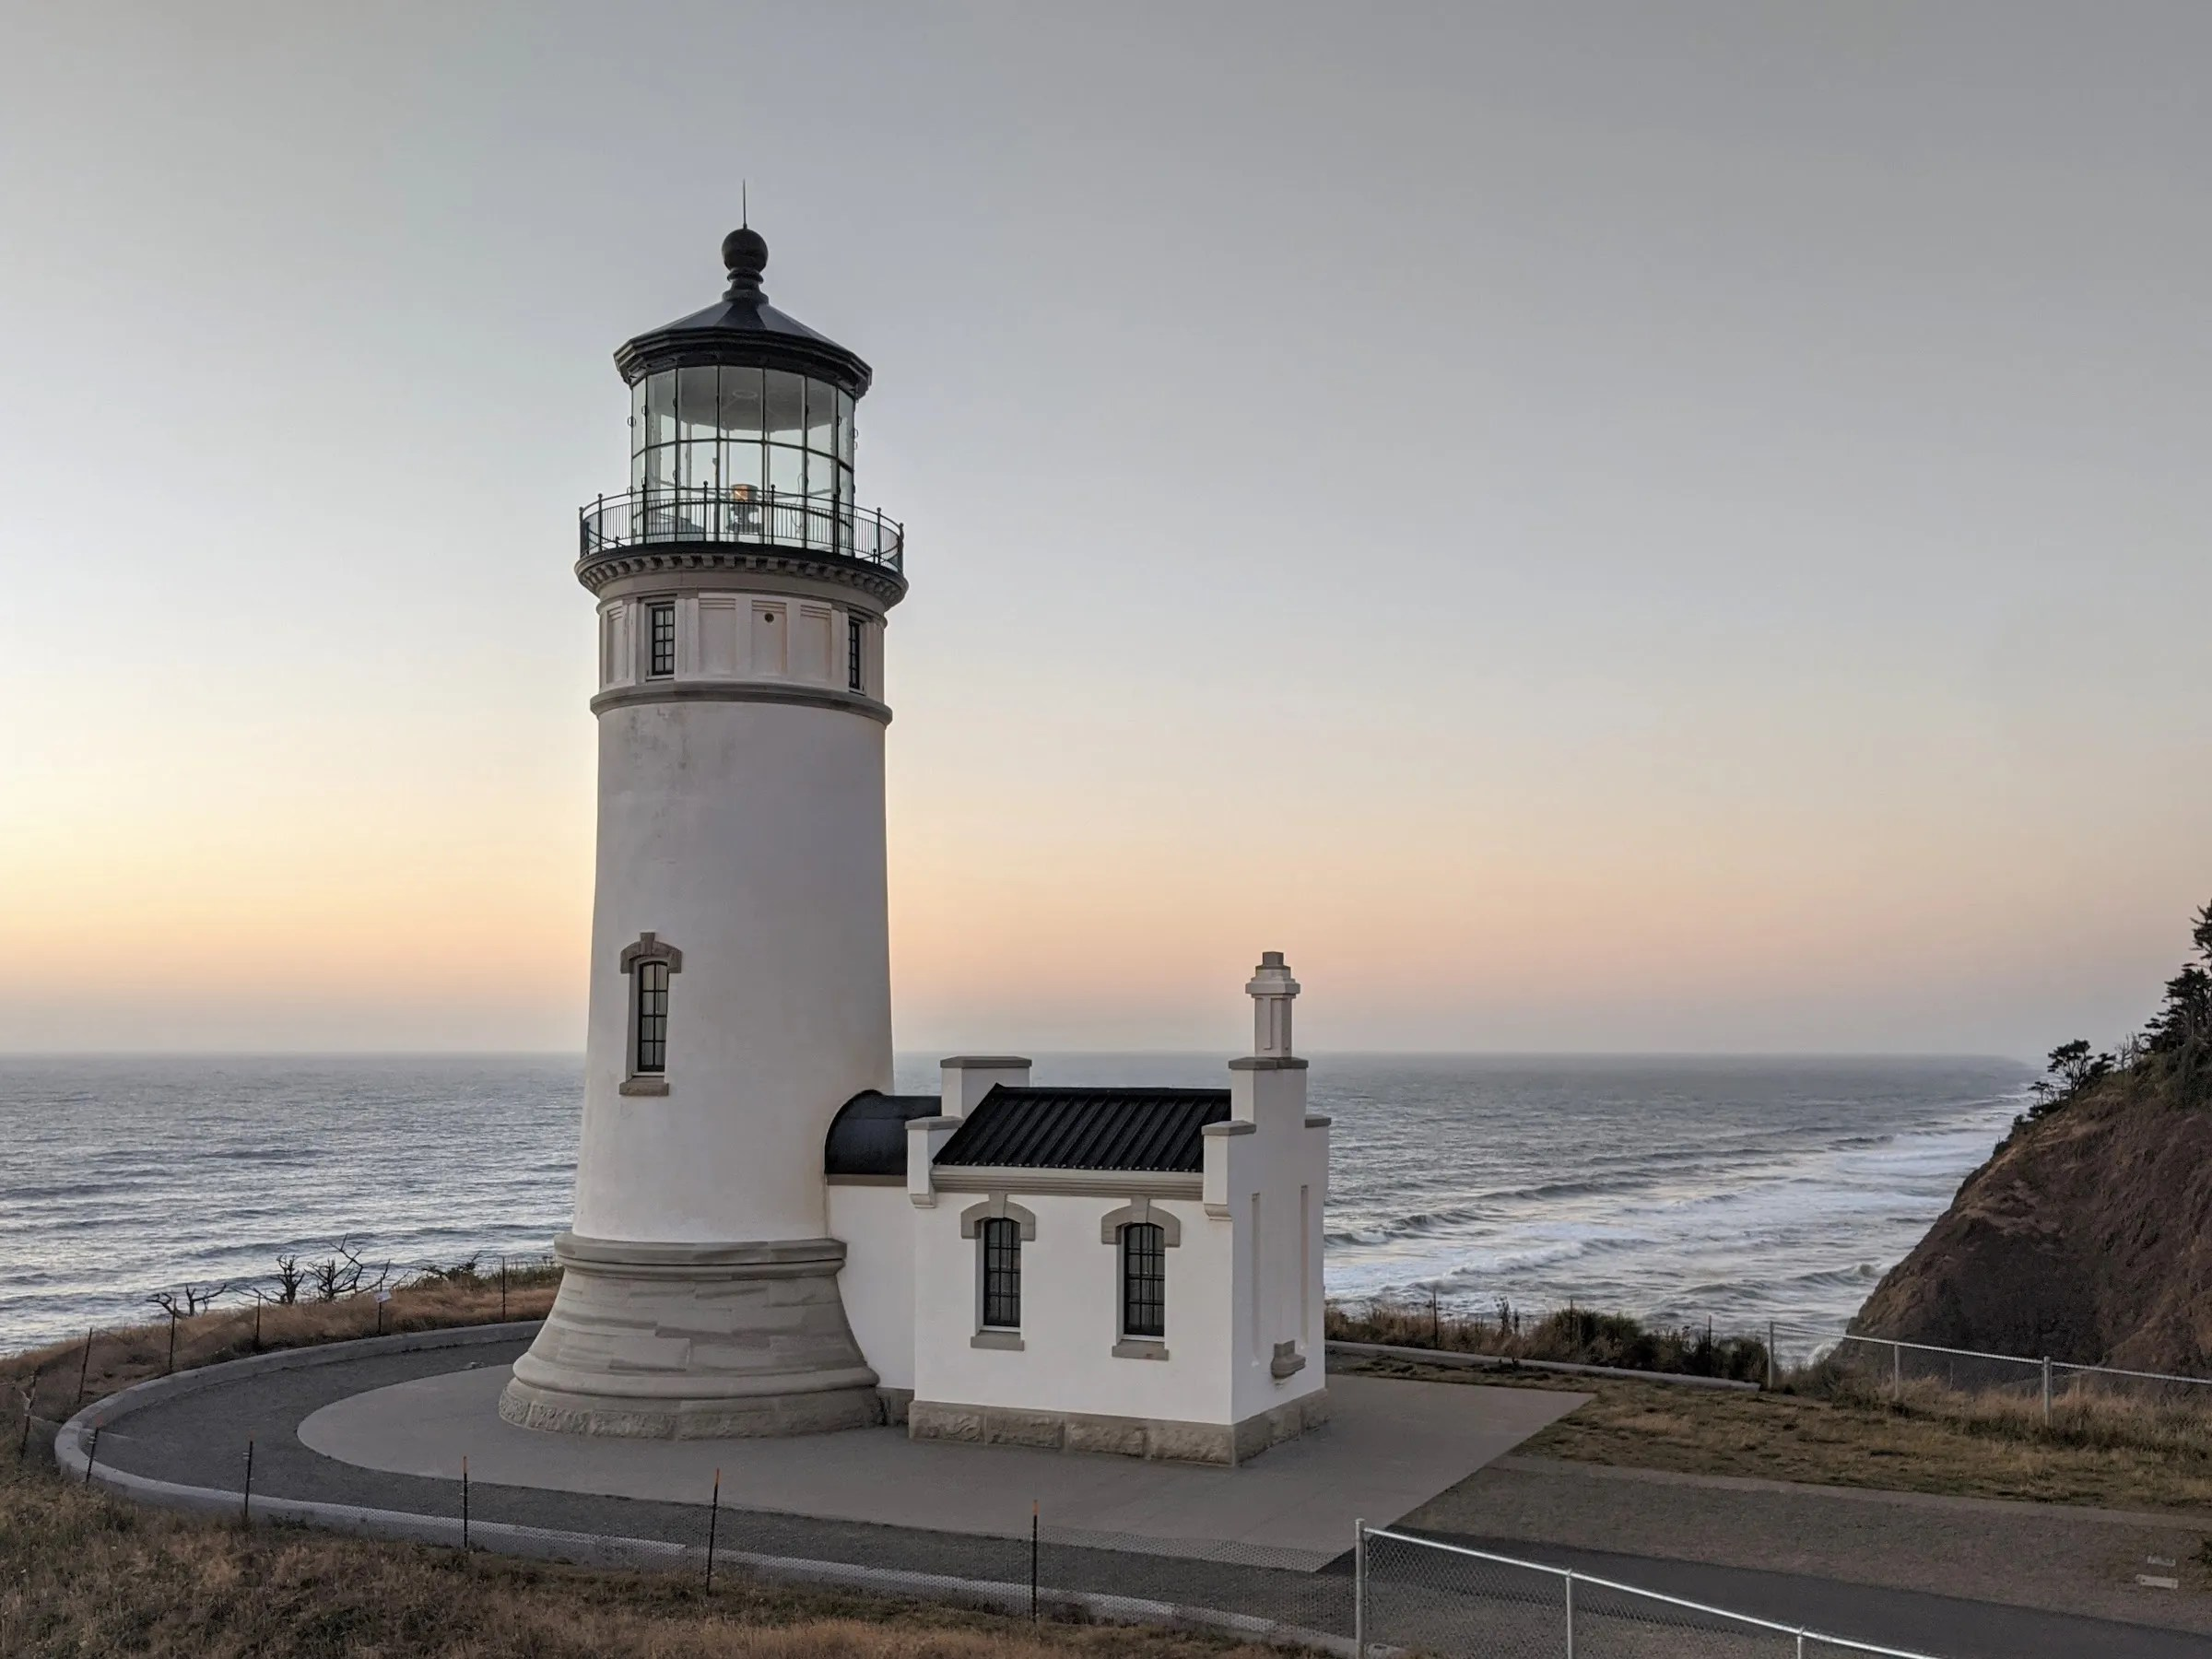 North Head Lighthouse at sunset